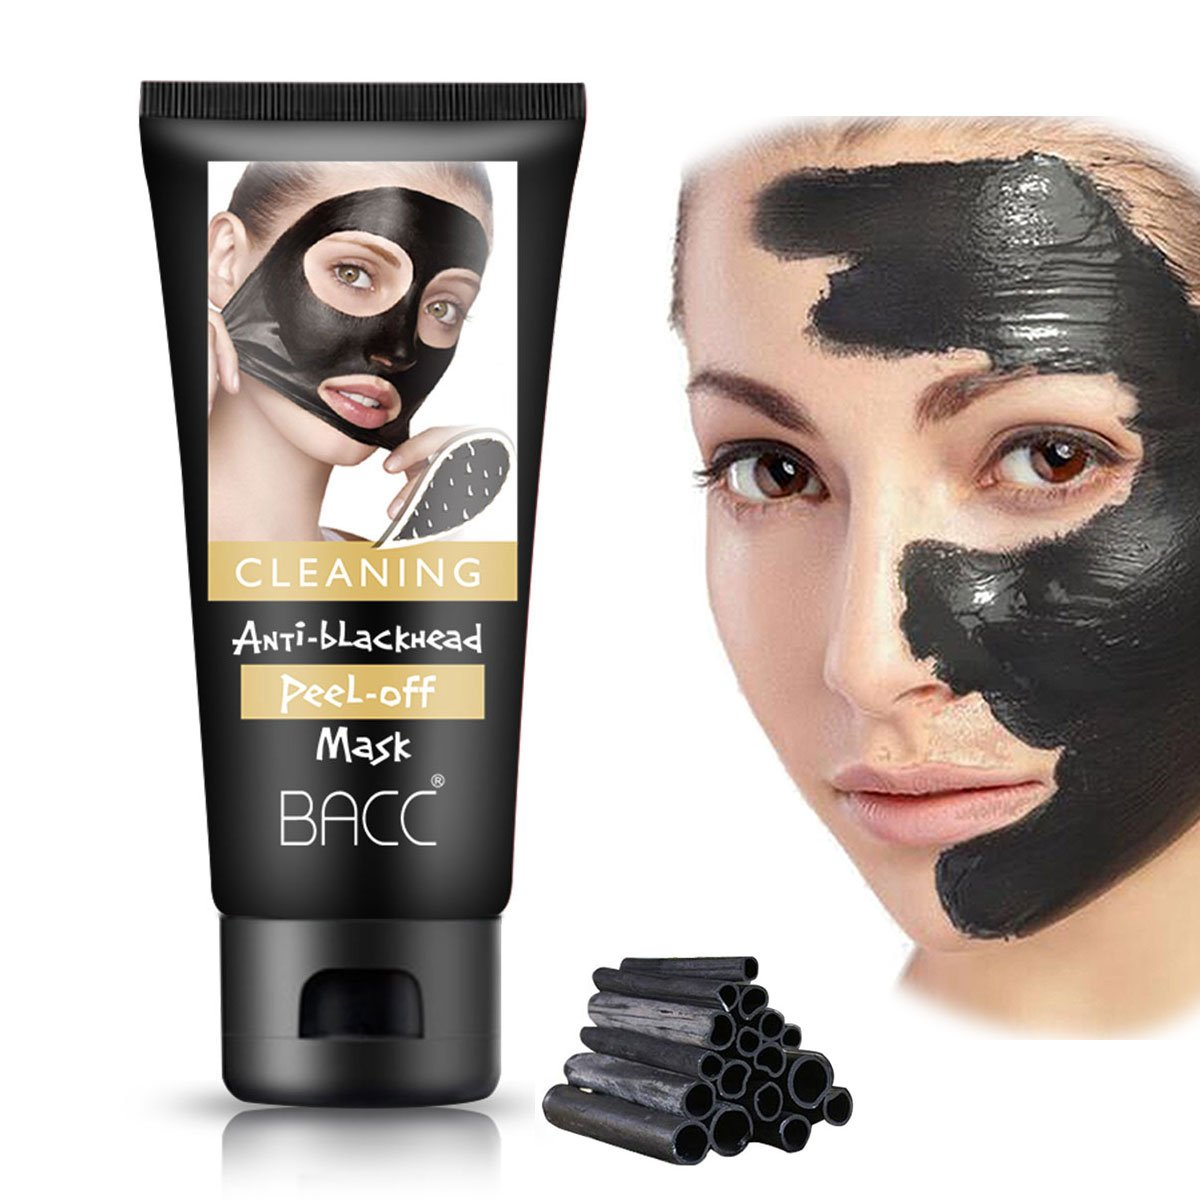 Blackhead Remover Mask Charcoal Peel Off Black Head Face Mud Mask Facial Purifying Hell Pore Deep Clean Up Cleansing Oil Control 60g